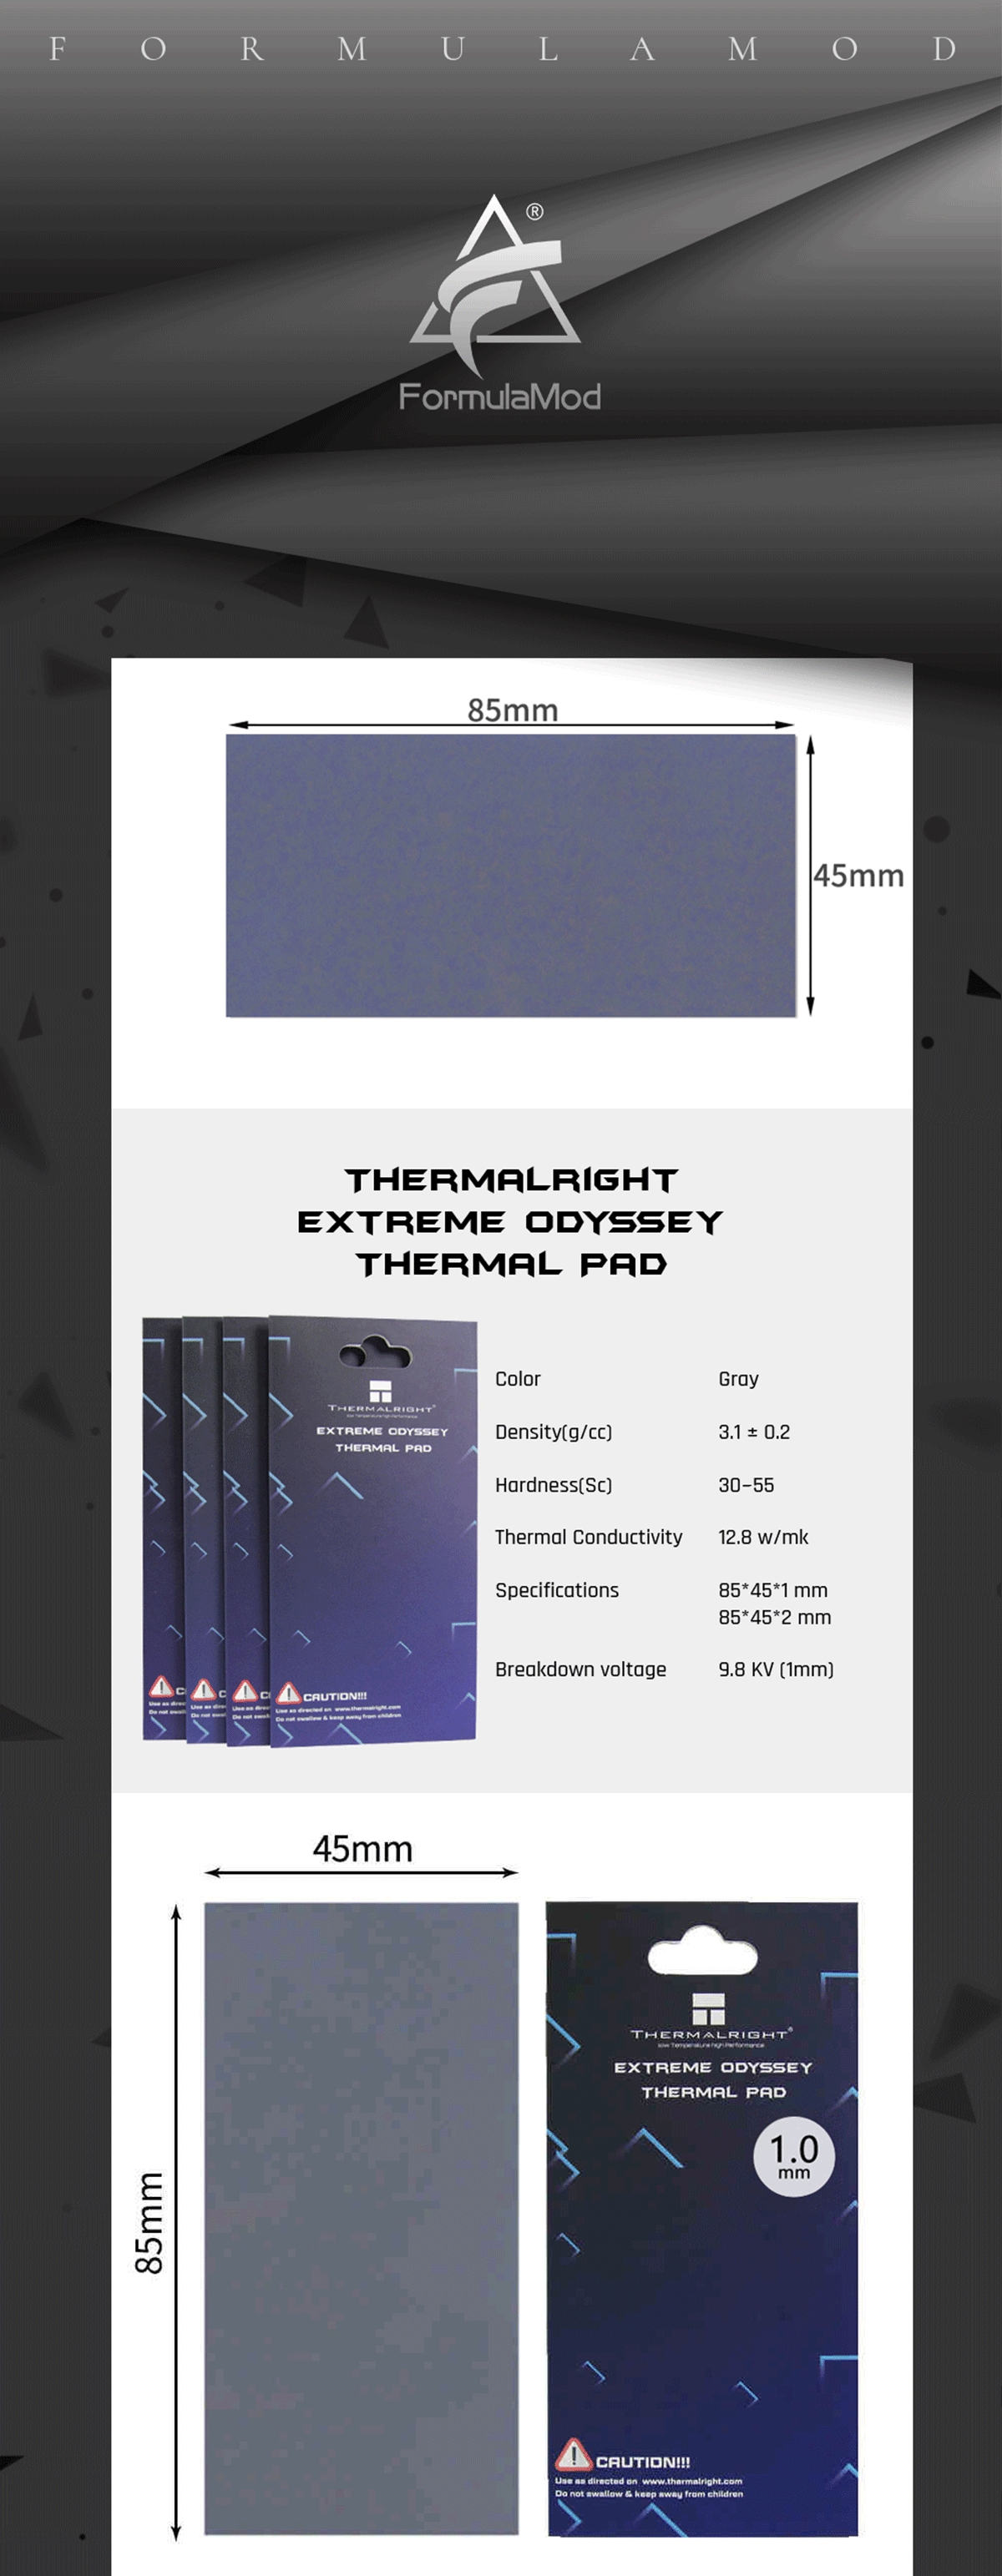 Thermalright Extreme Odyssey Thermal Pad 1/1.5/2mm 12.5W/mK Multifunction Insulation Pad For GPU/RAM/Motherborad/SSD etc. Circuit board